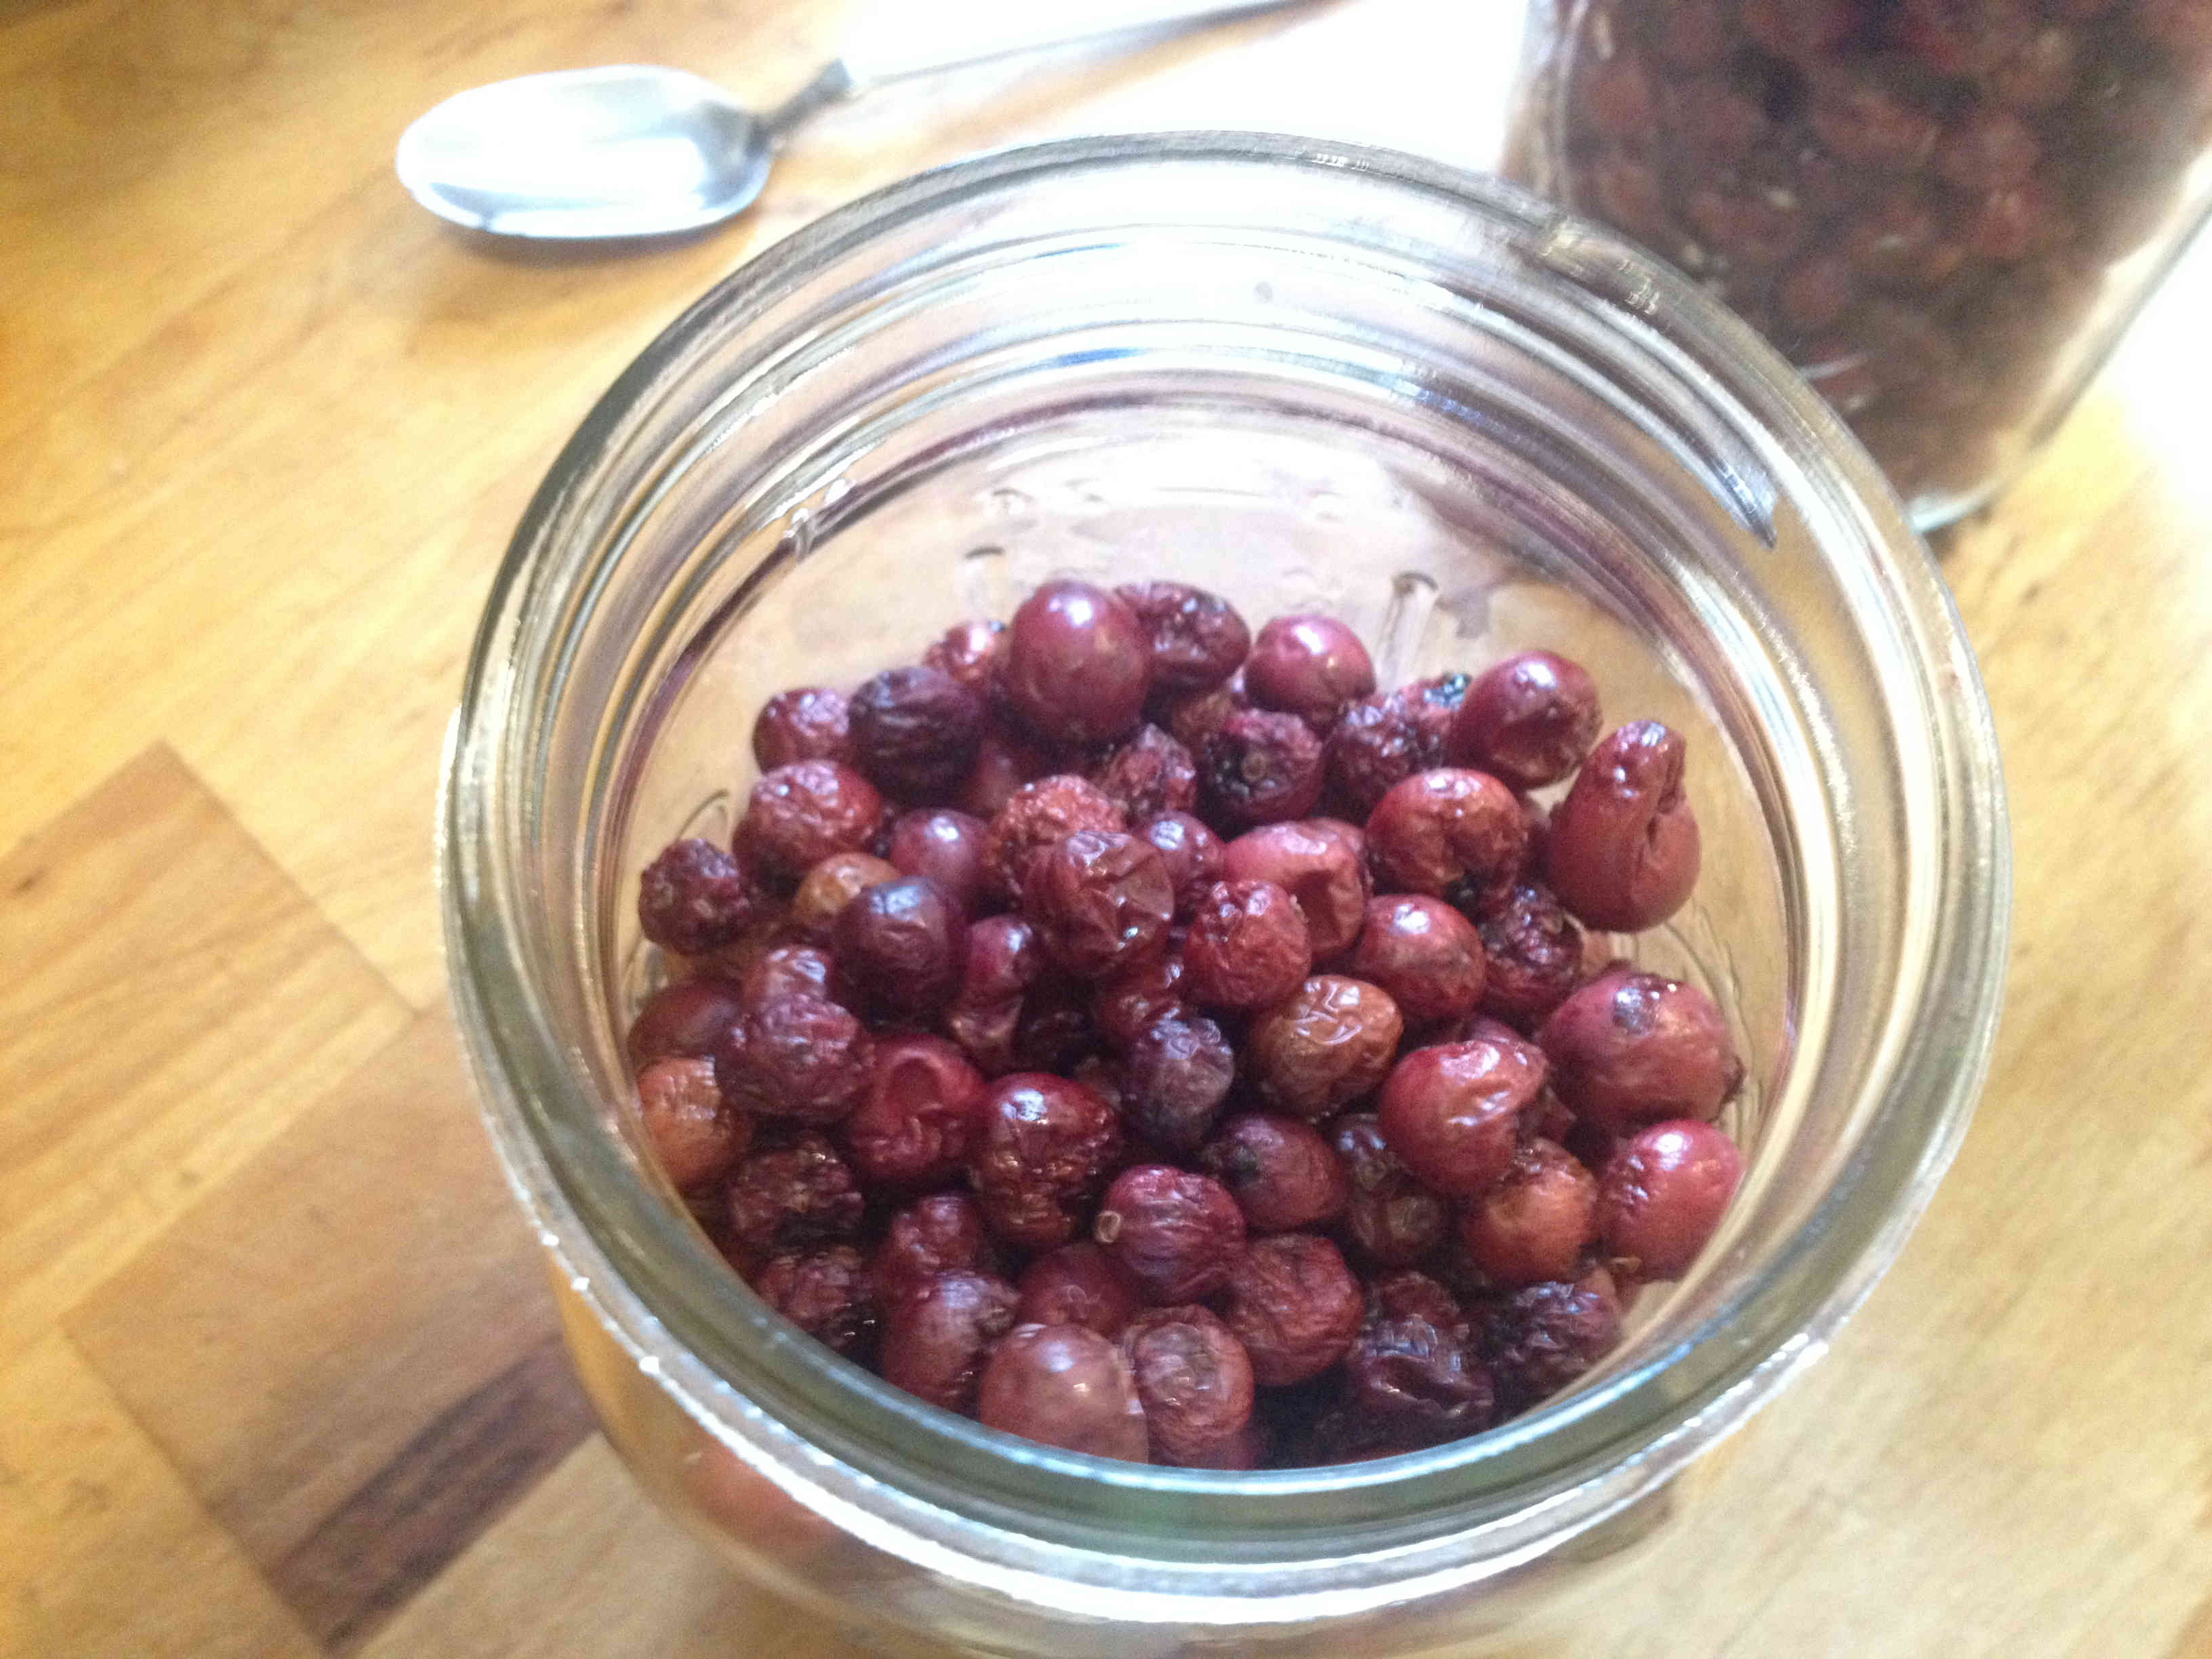 Whole Cranberries Dehydrated in Jar